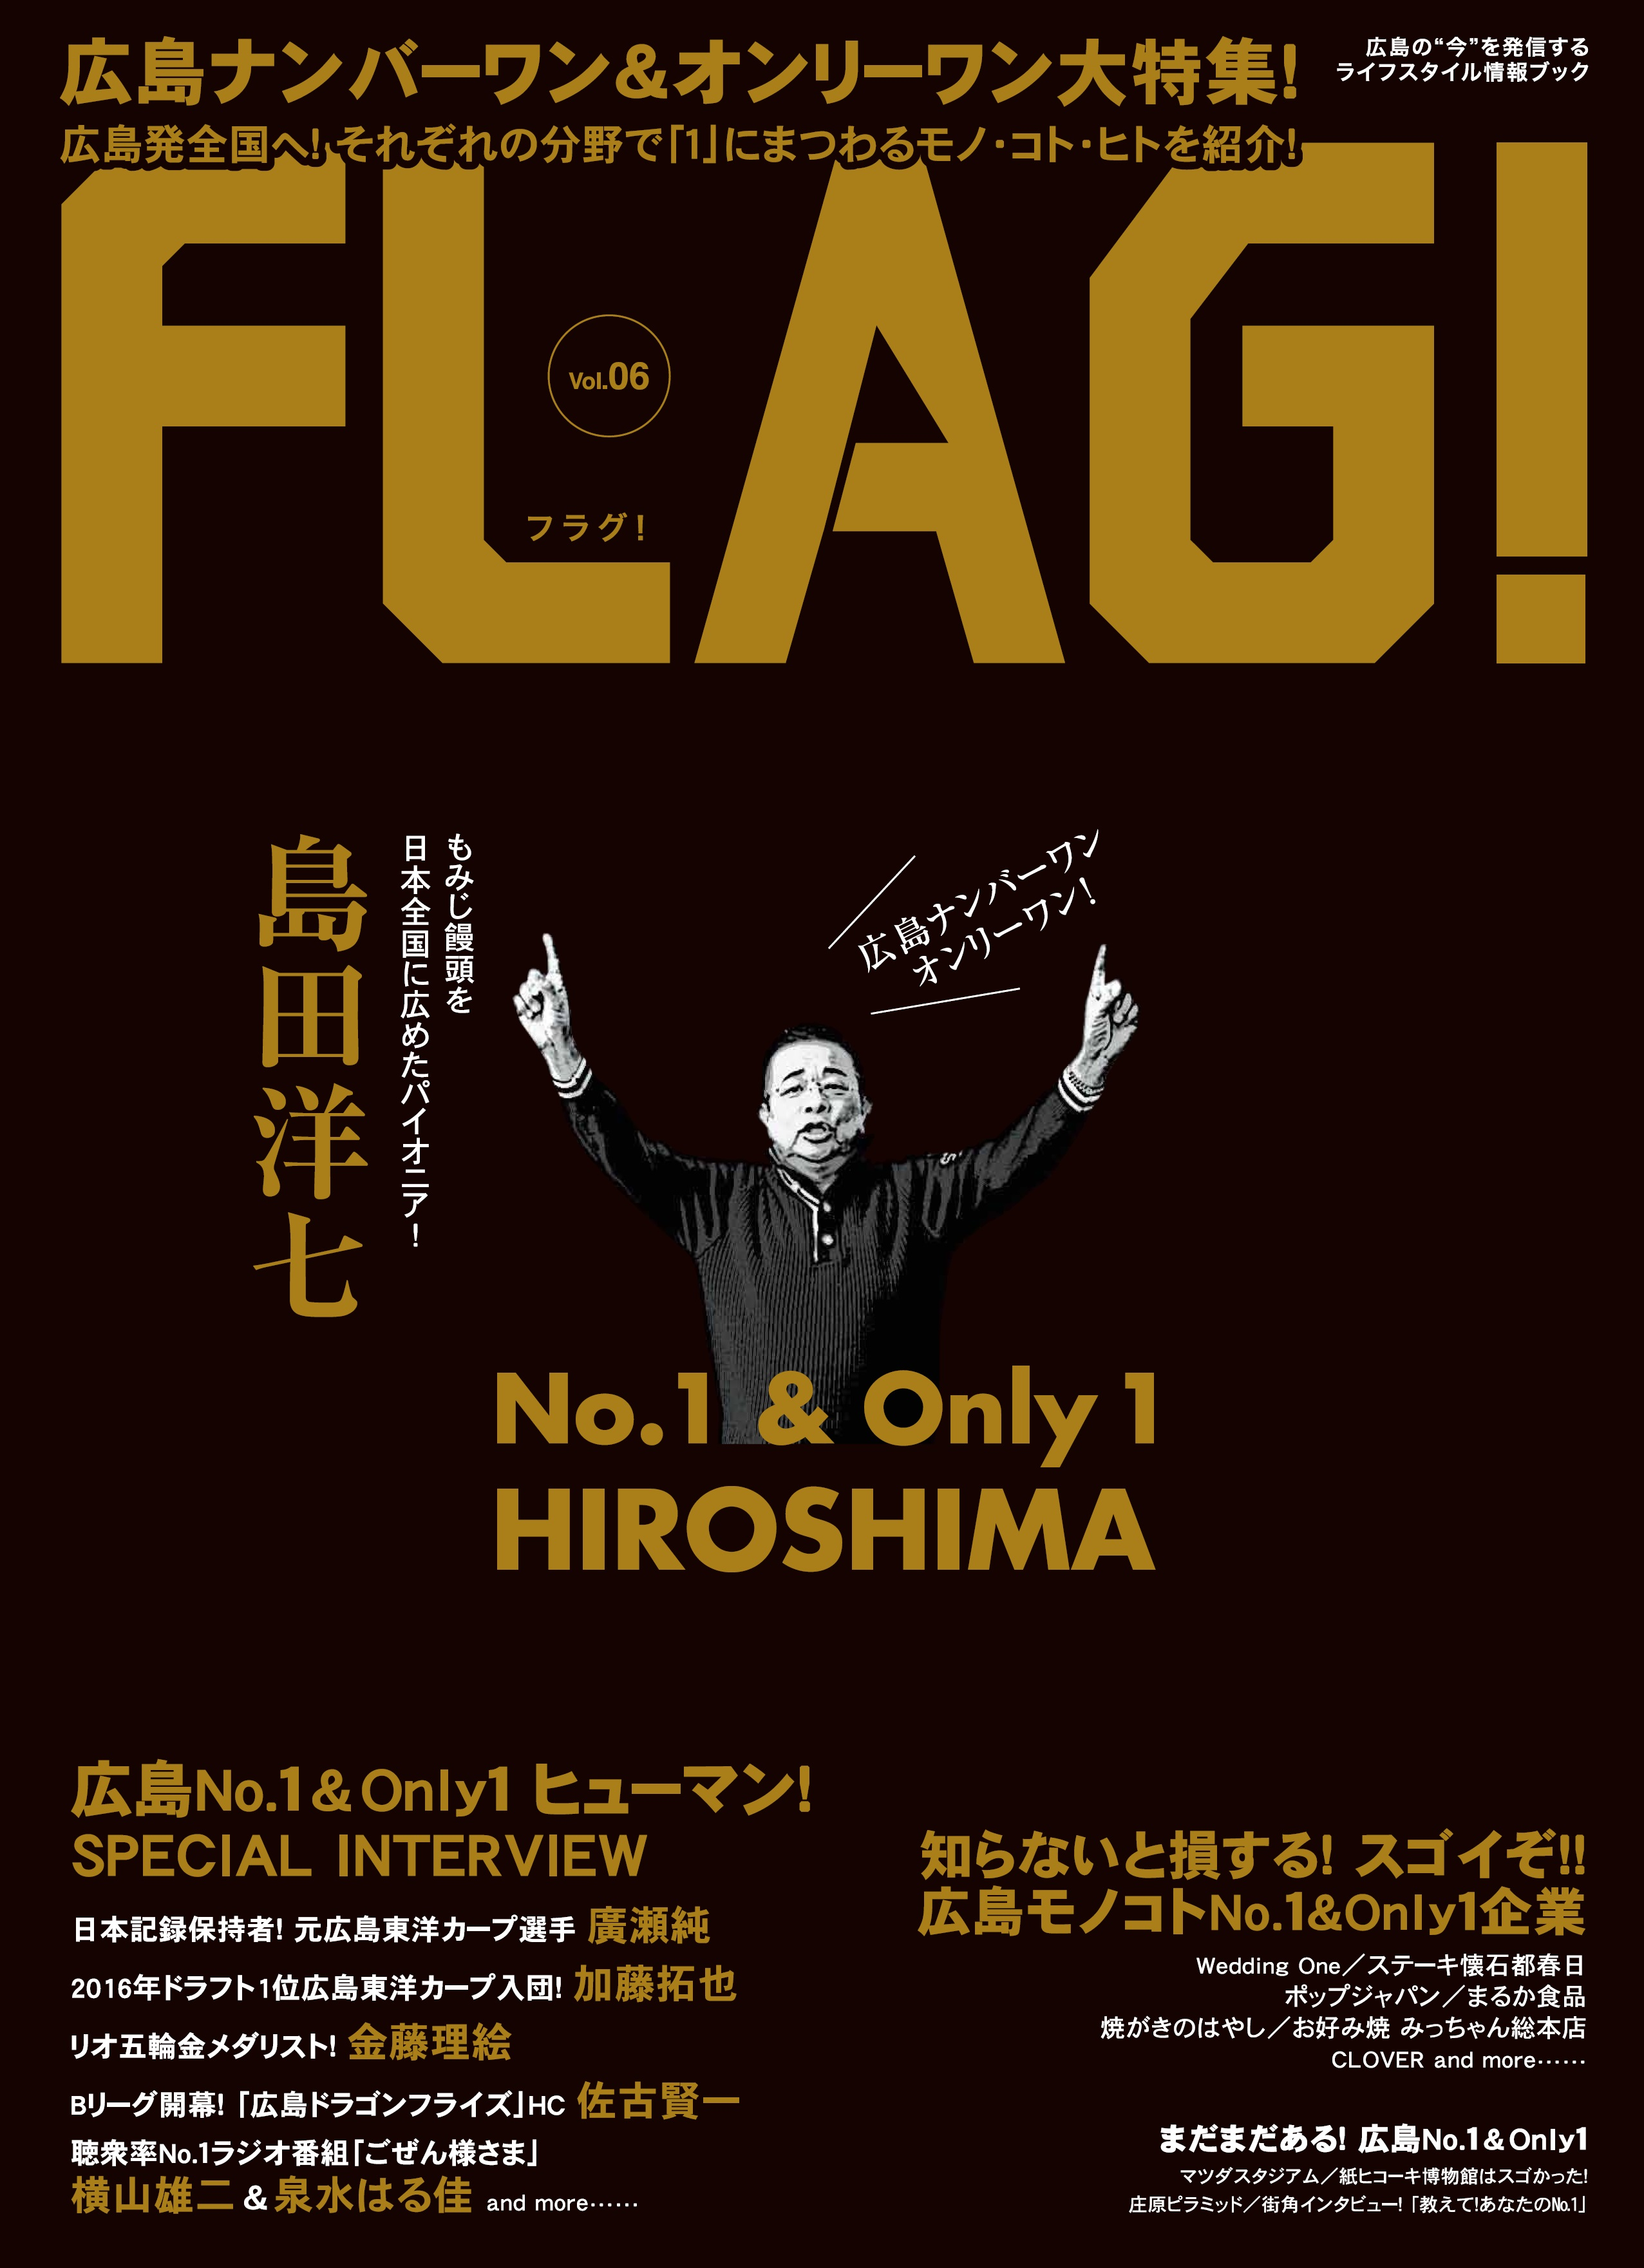 FLAG! Vol.6 No.1 & Only 1 HIROSHIMA